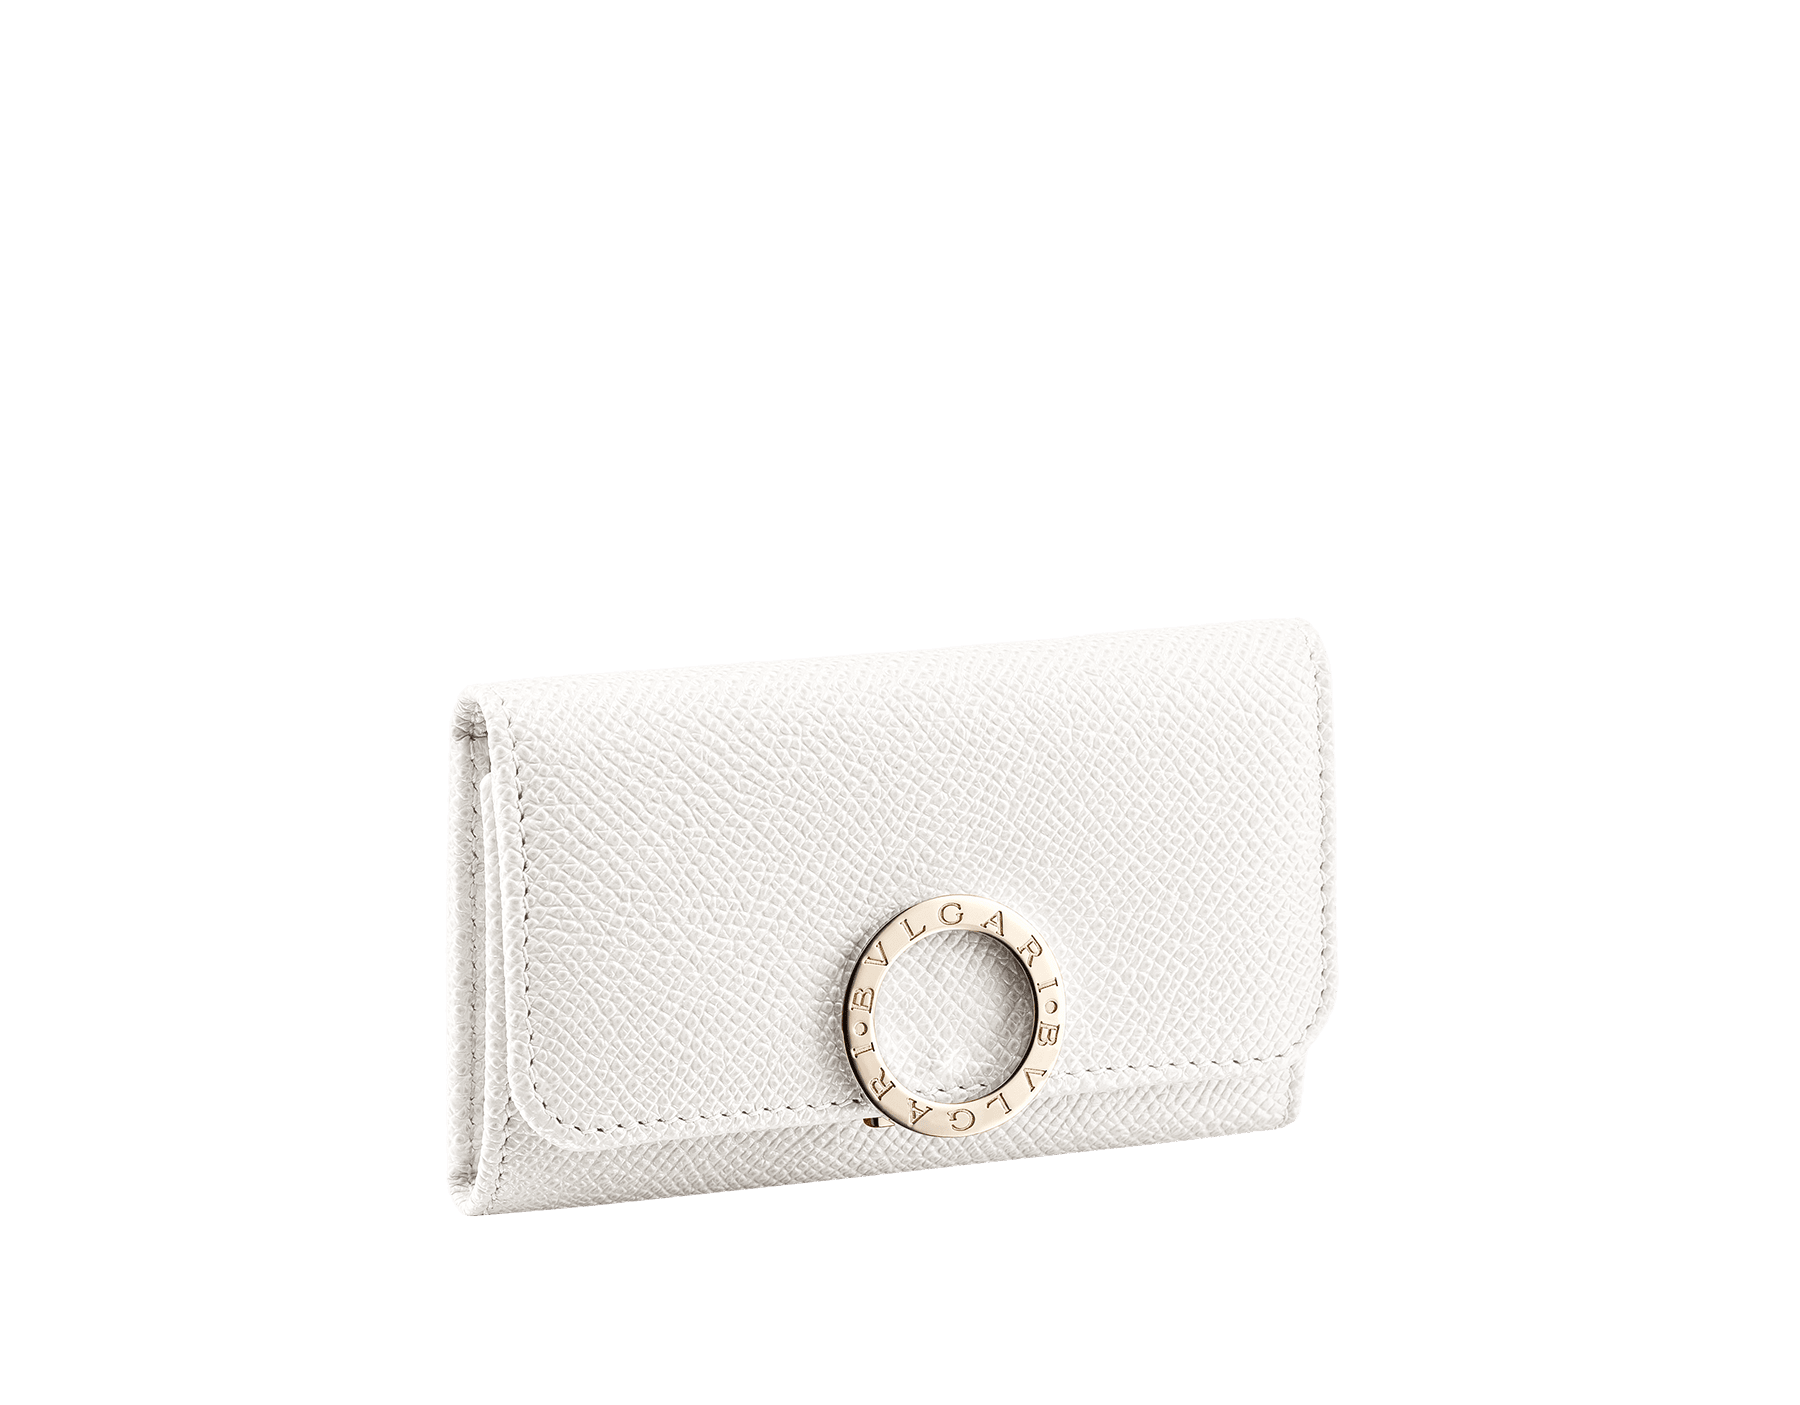 """""""BVLGARI BVLGARI"""" small key holder in mint bright grain calf leather and taffy quartz soft nappa leather. Iconic logo clip closure in light gold plated brass. 579-KEYHOLDER-Sa image 1"""